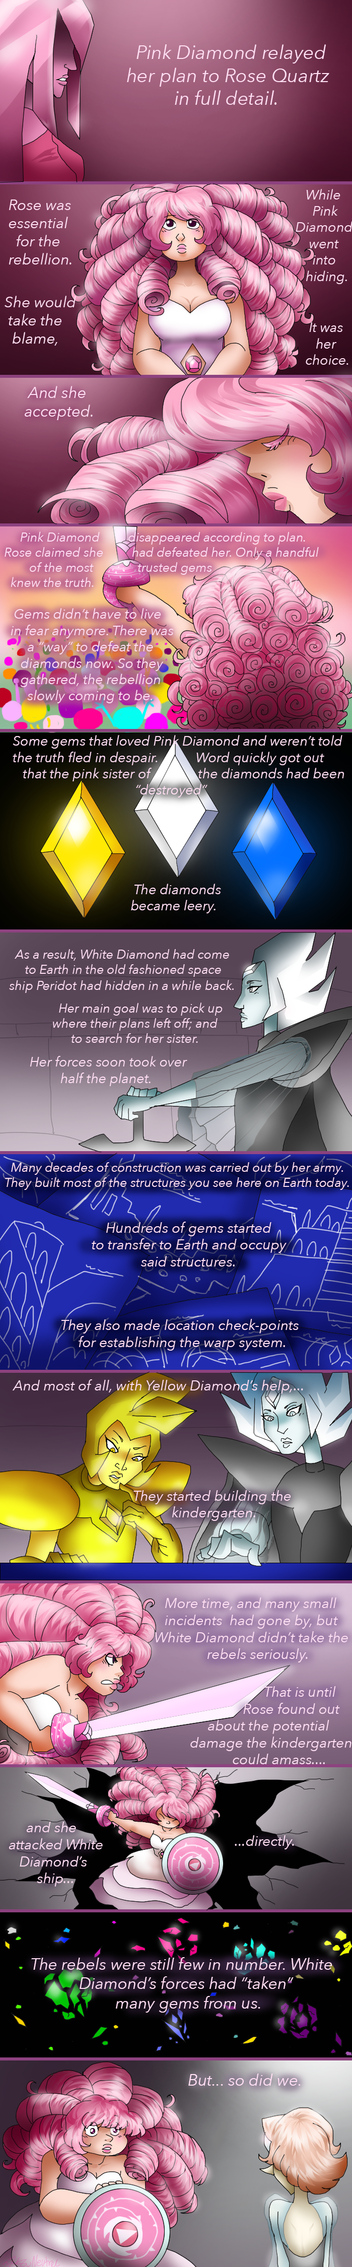 Pink Diamond's tale p2 by HezuNeutral